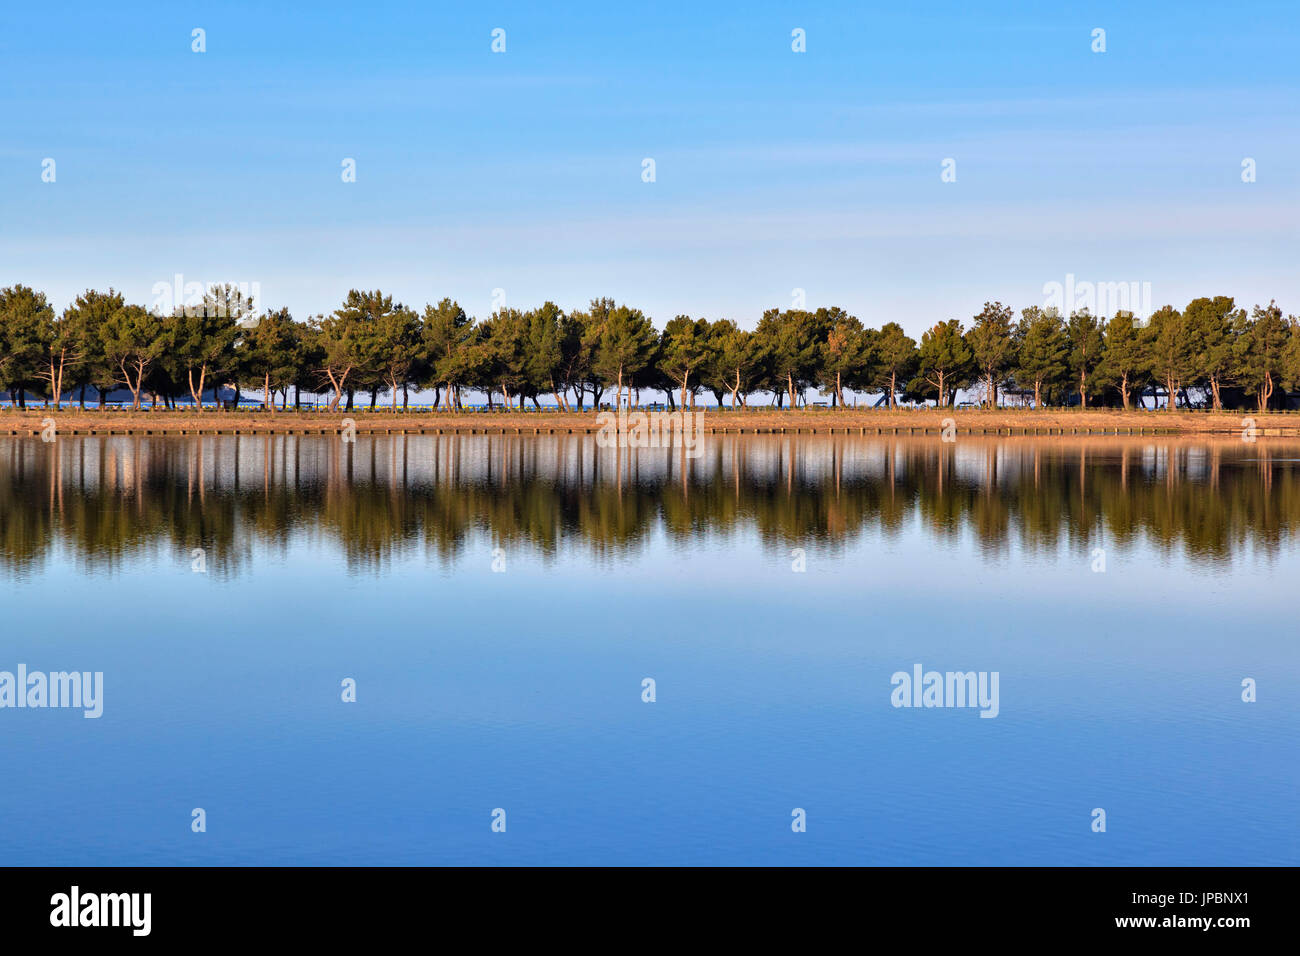 Europe, Slovenia, Istria. Reflection on the water of the Stunjan saltpans Stock Photo